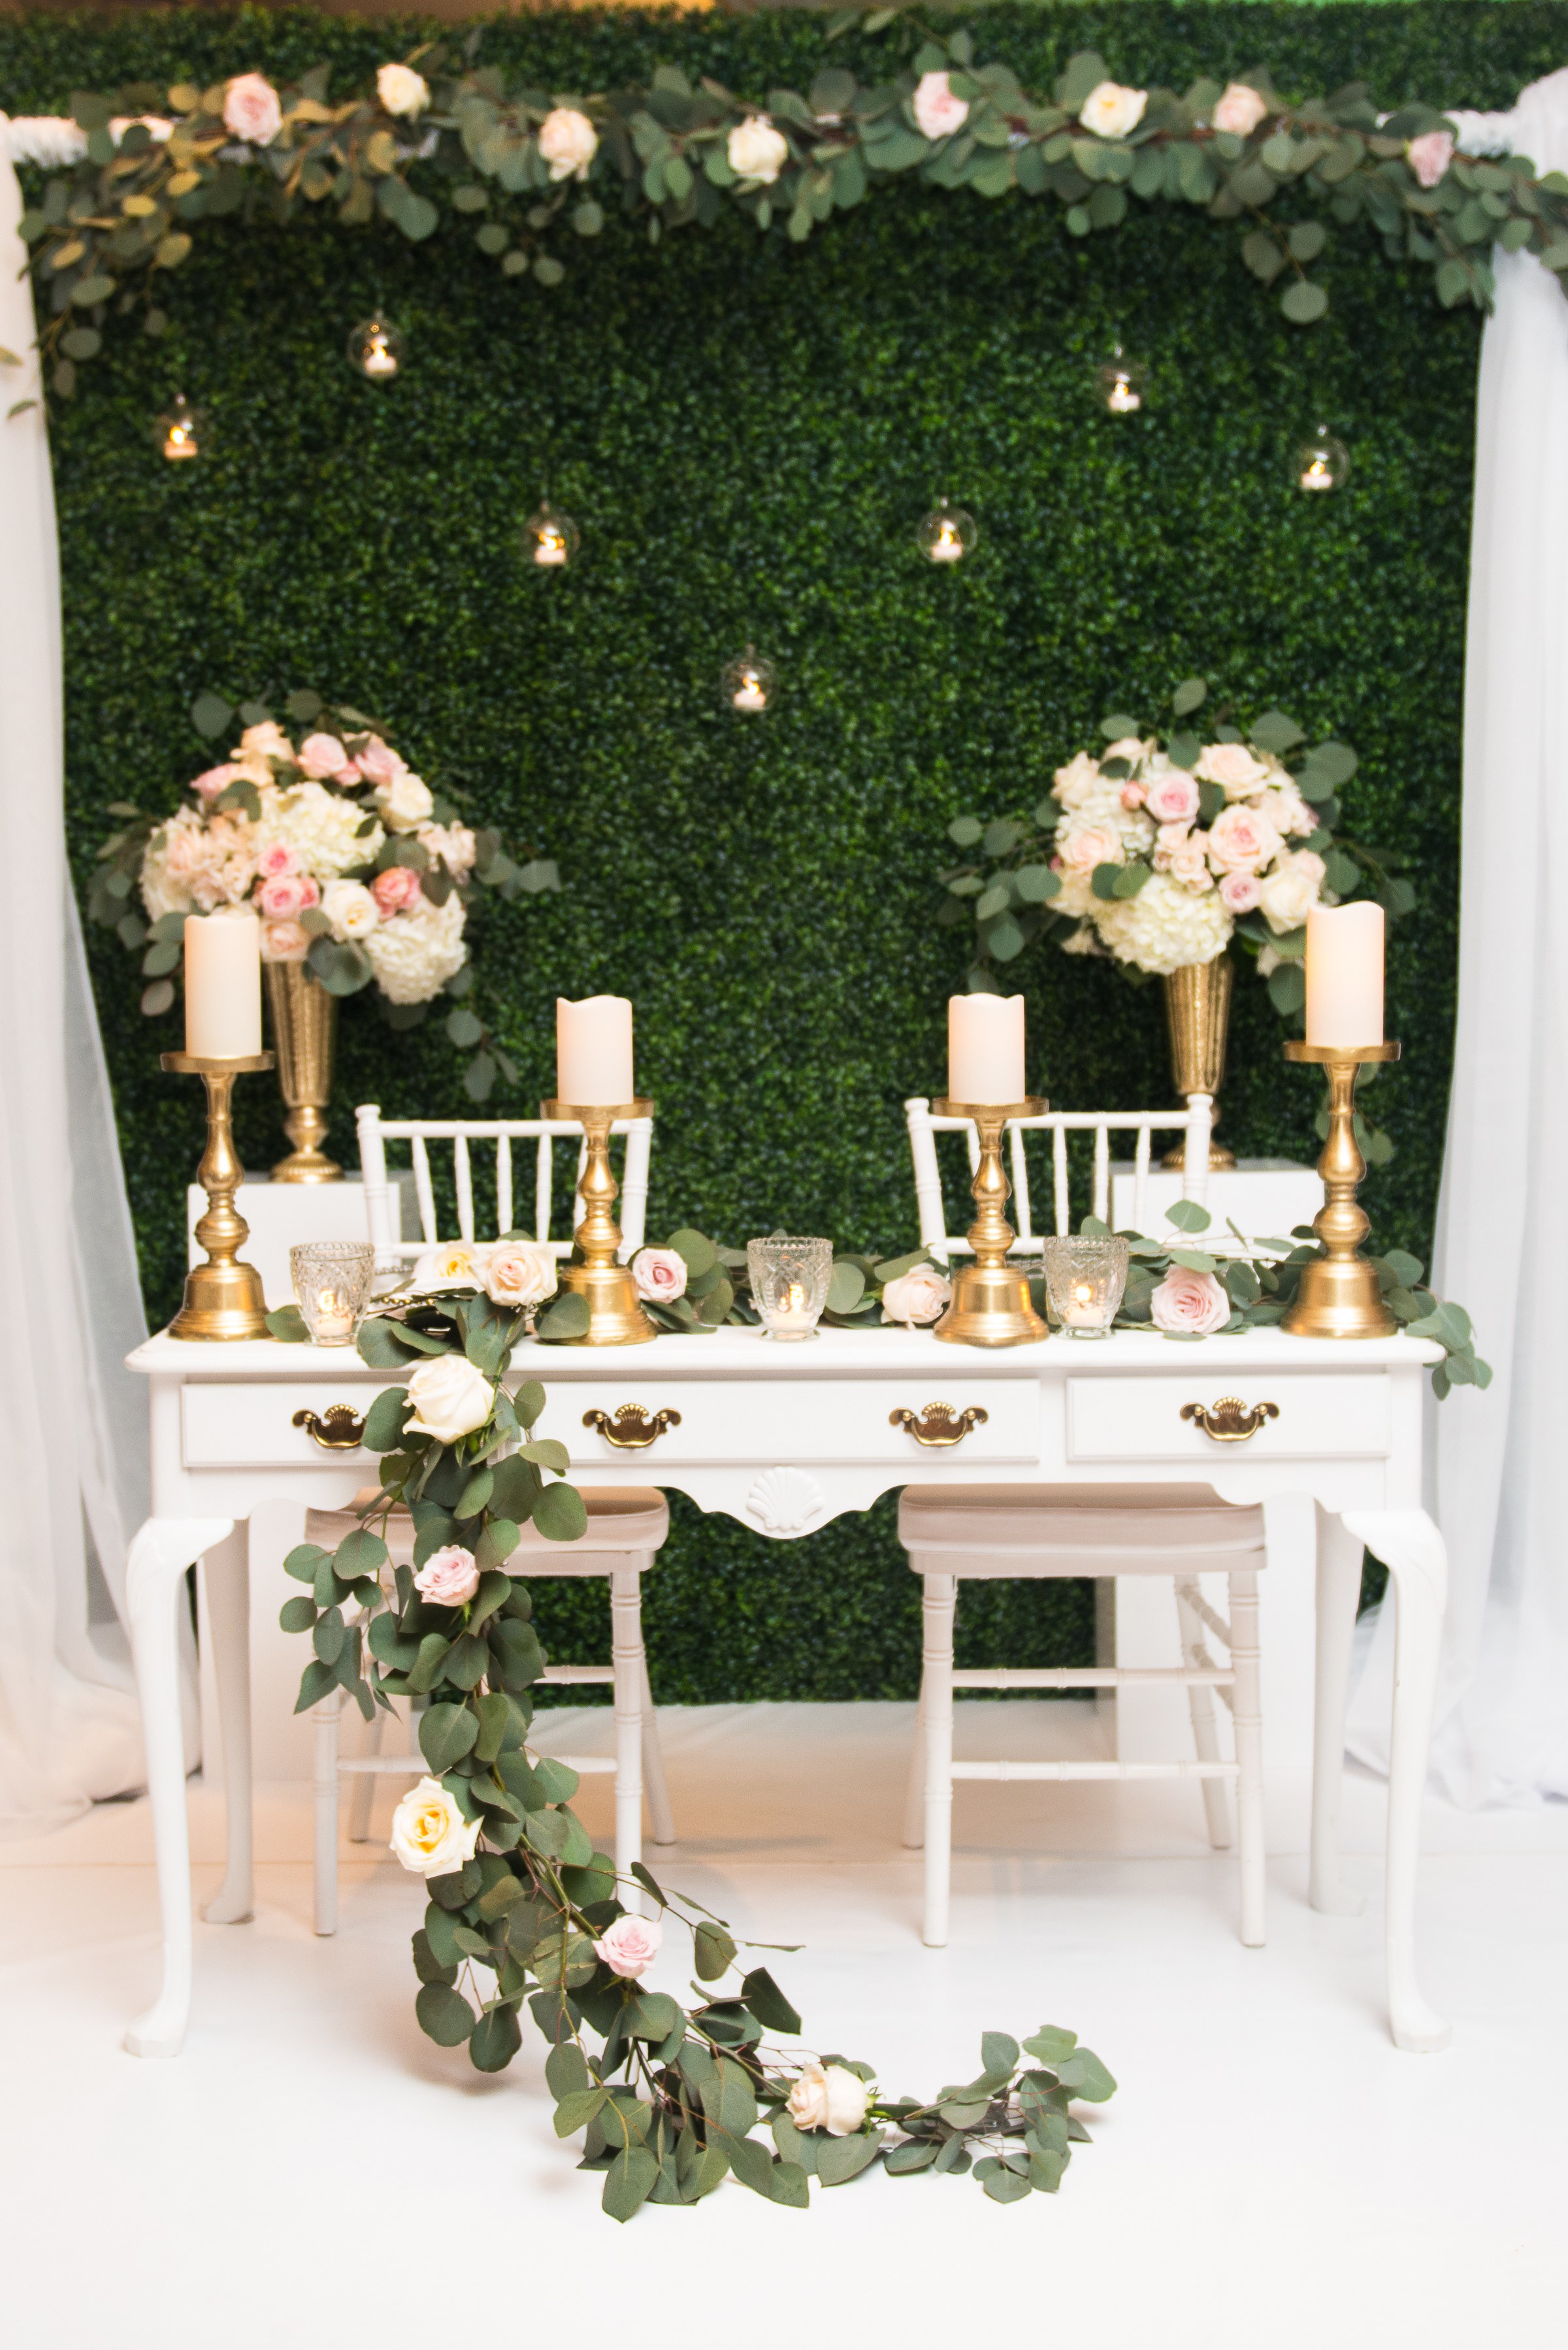 Flowers by Janie Booth at Bridal Expo